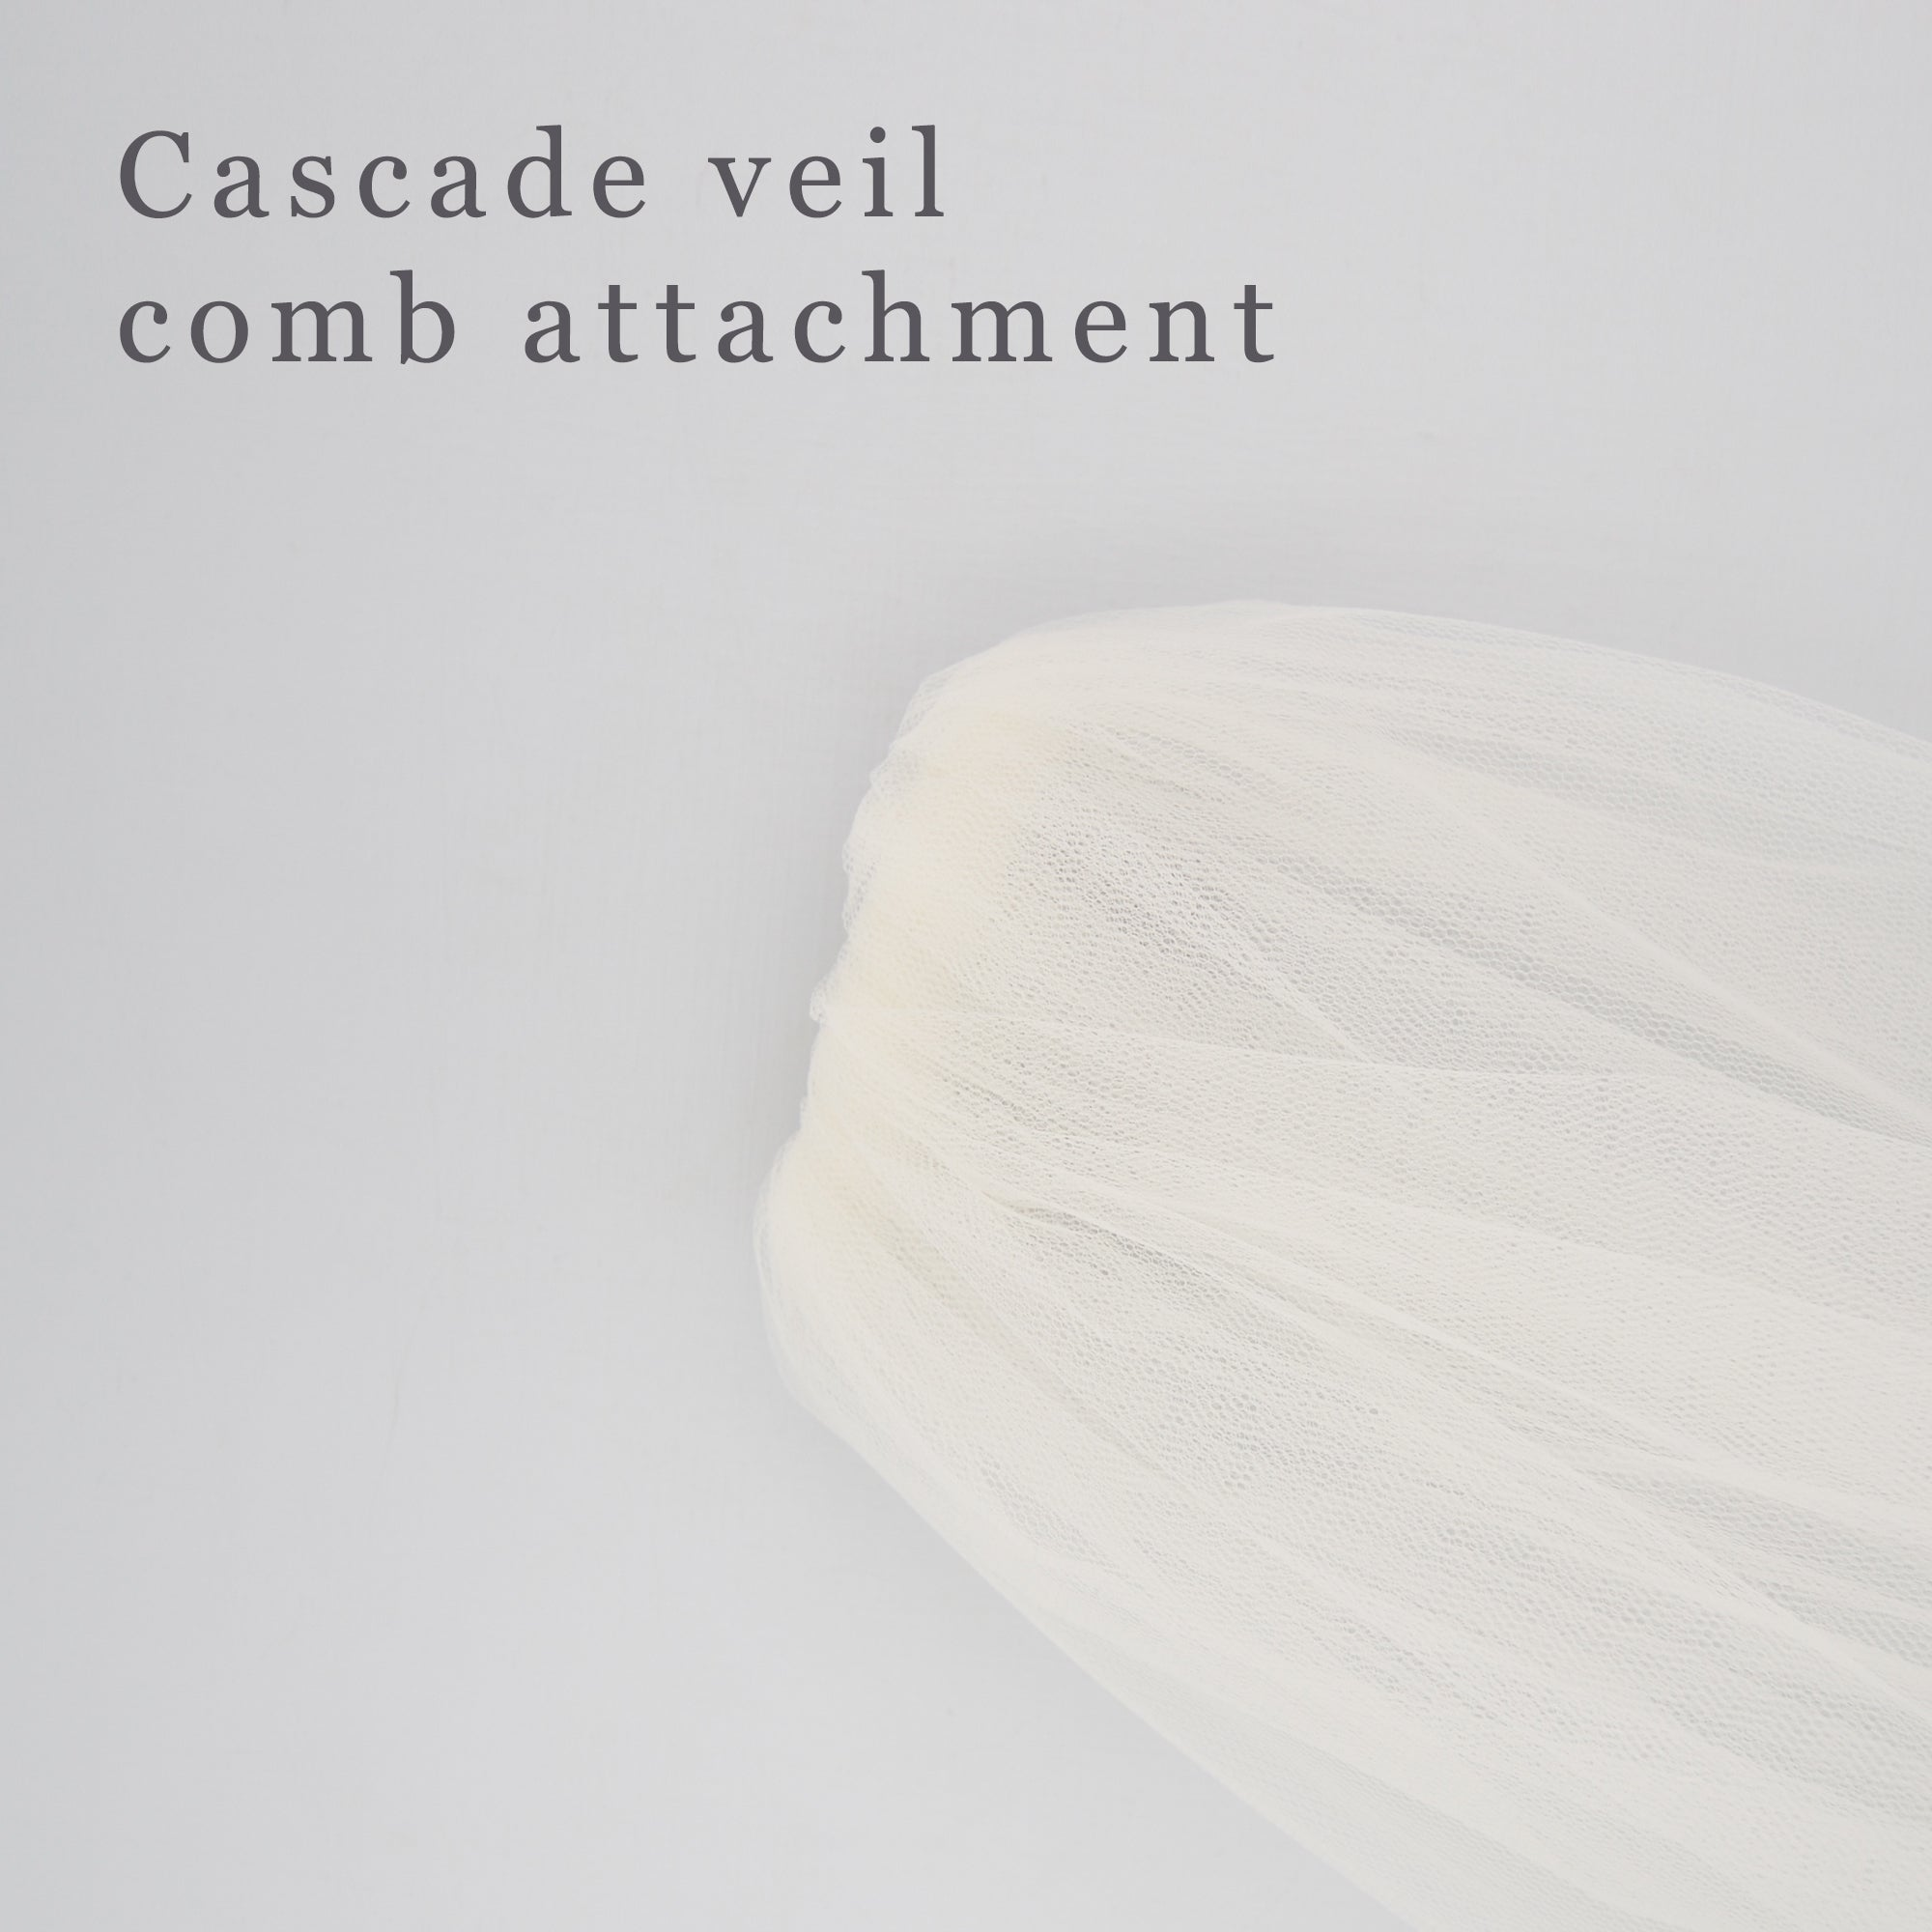 cascade veil comb attachment